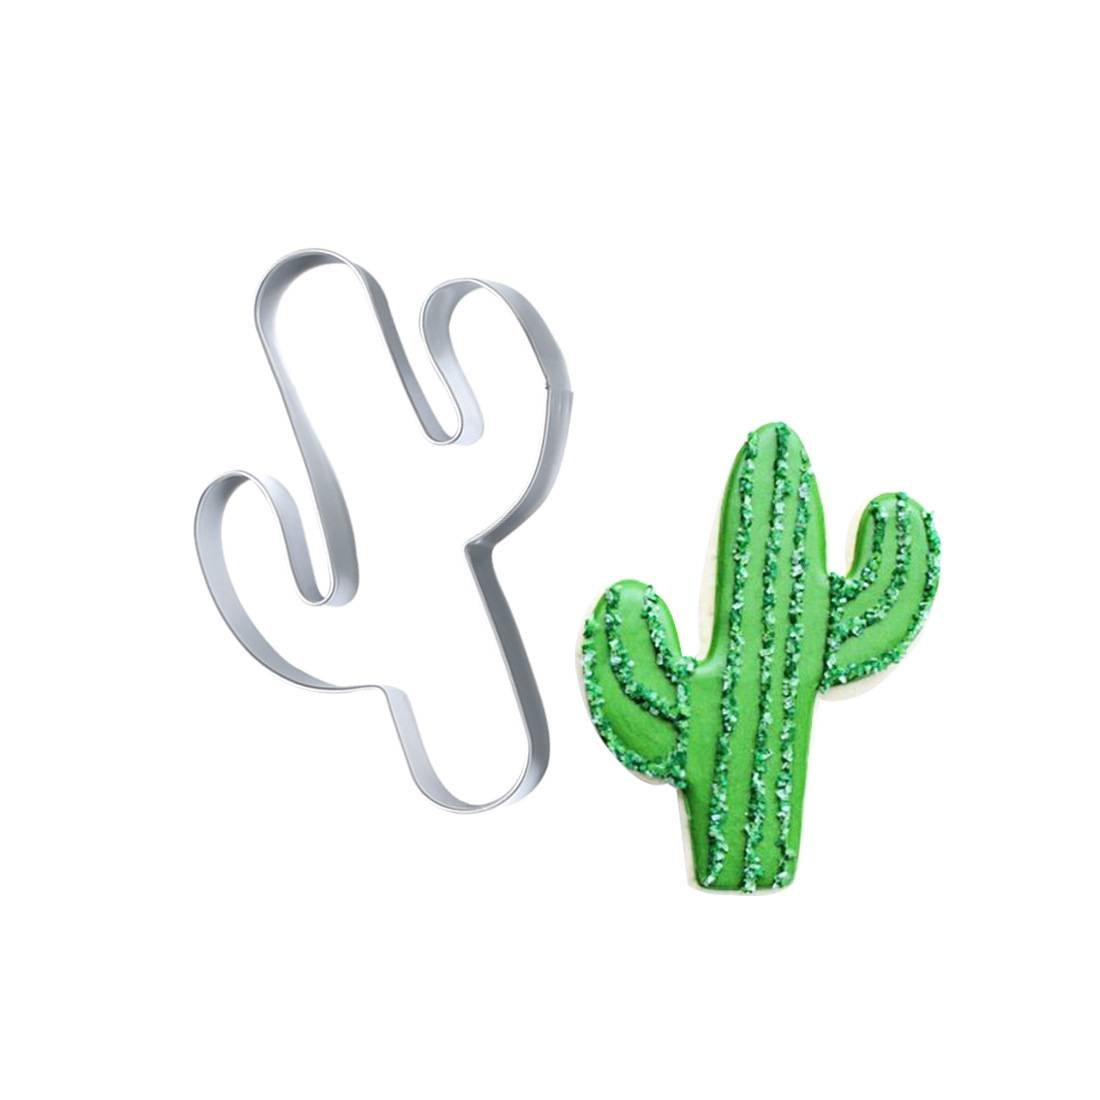 cactus shaped stainless steel cookie cutter Featured Image